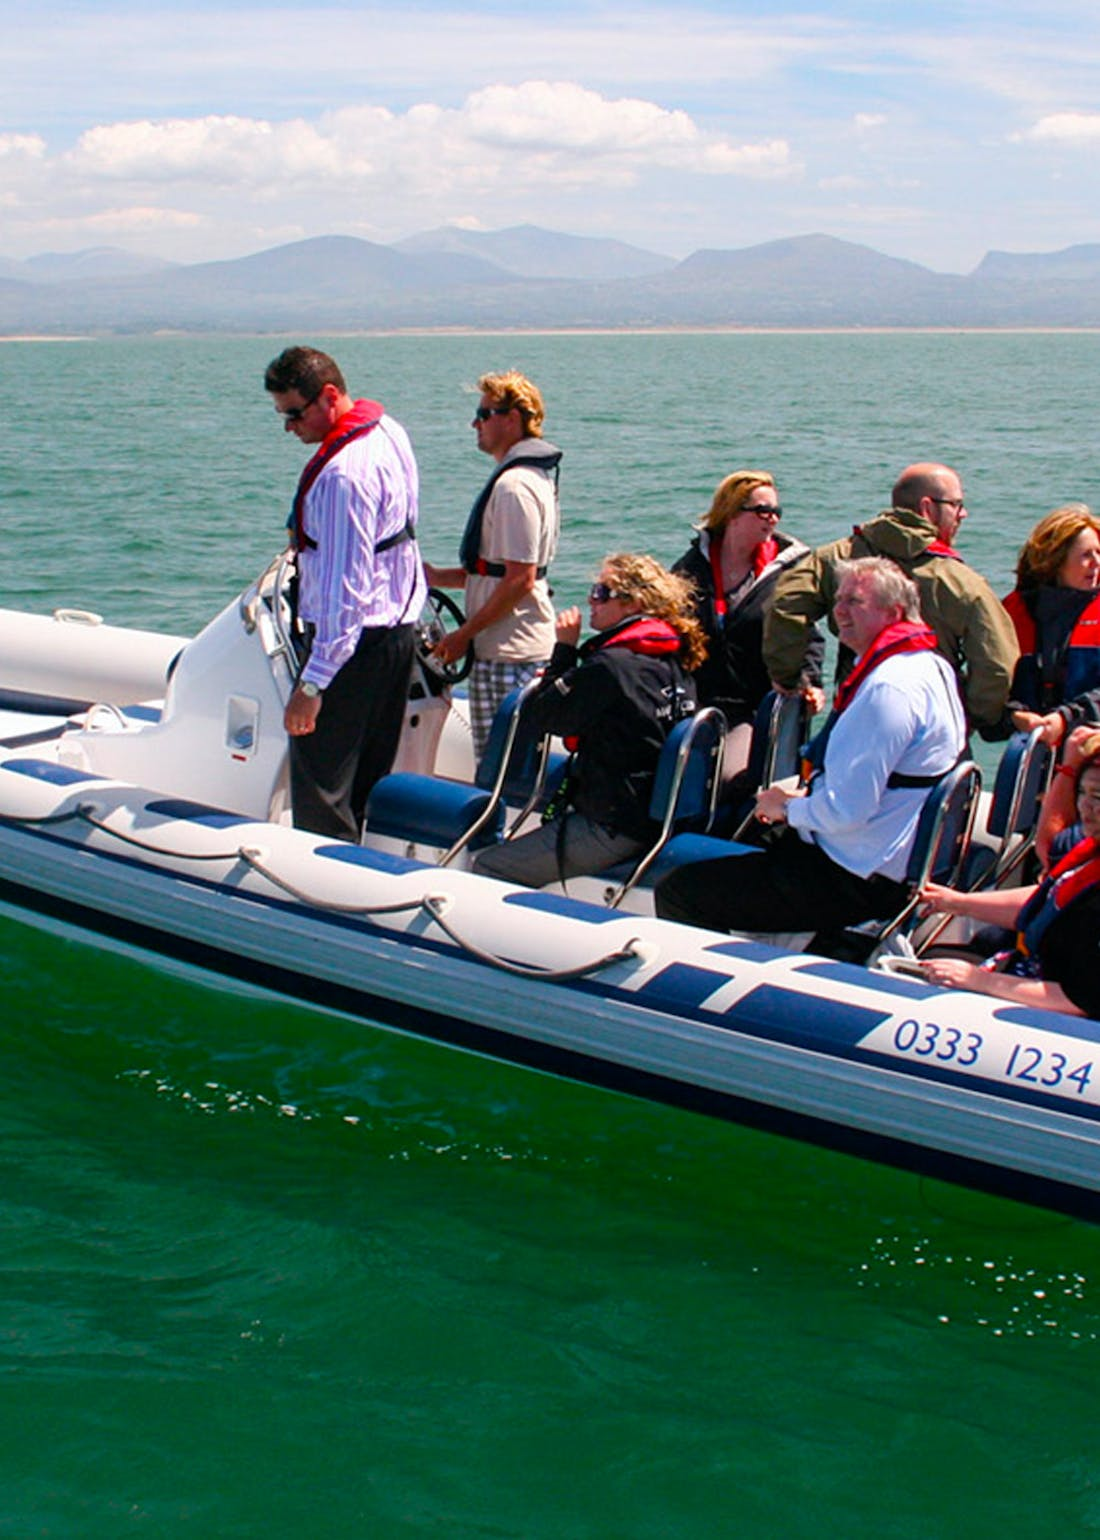 Virgin Experience Days North Wales Rigid Inflatable Boat Ride for 2